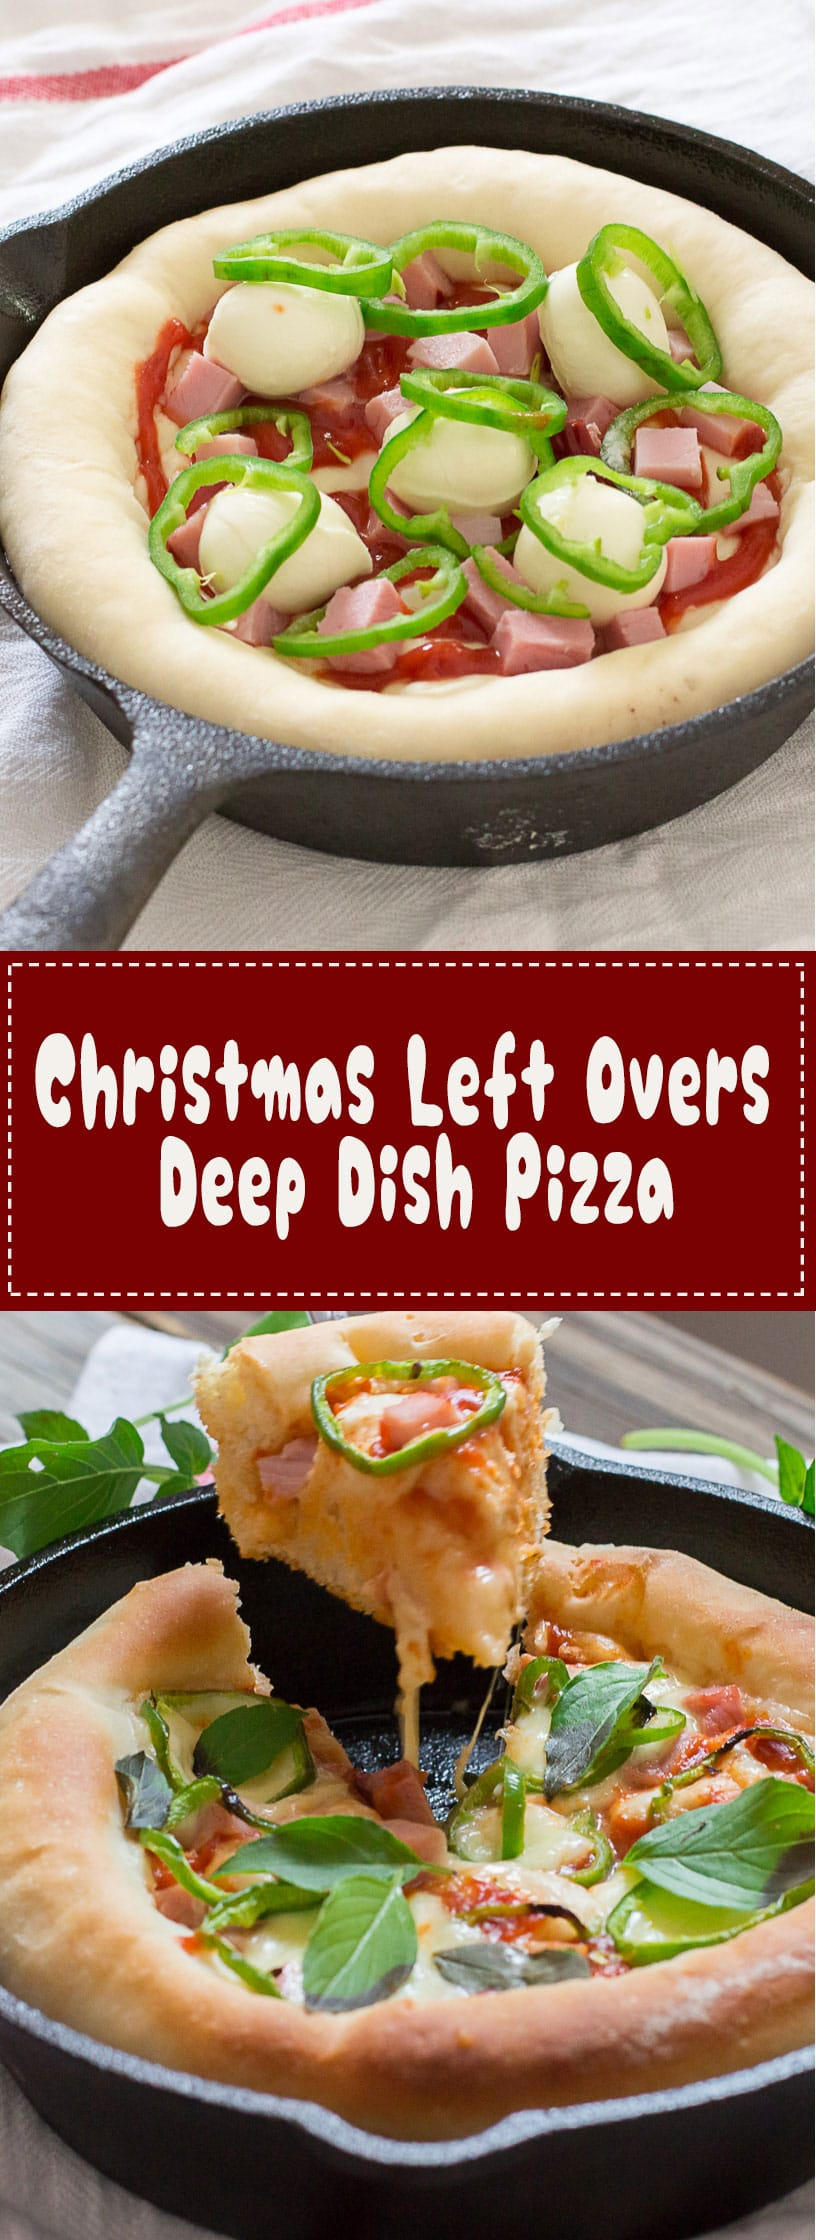 Christmas Left Overs Deep Dish Pizza